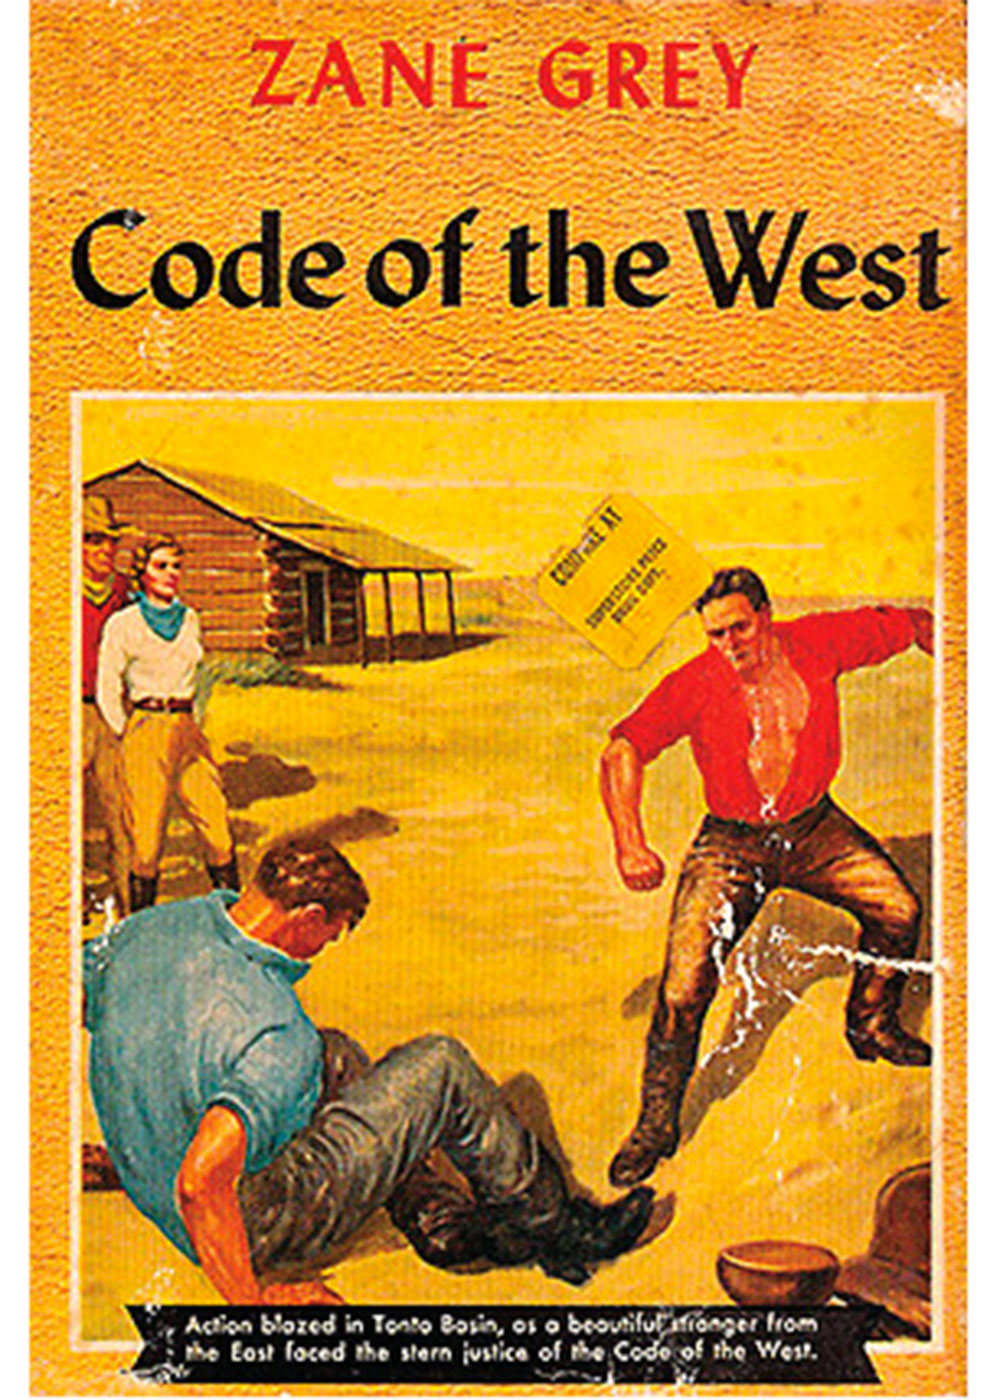 code of the west zane grey true west magazine